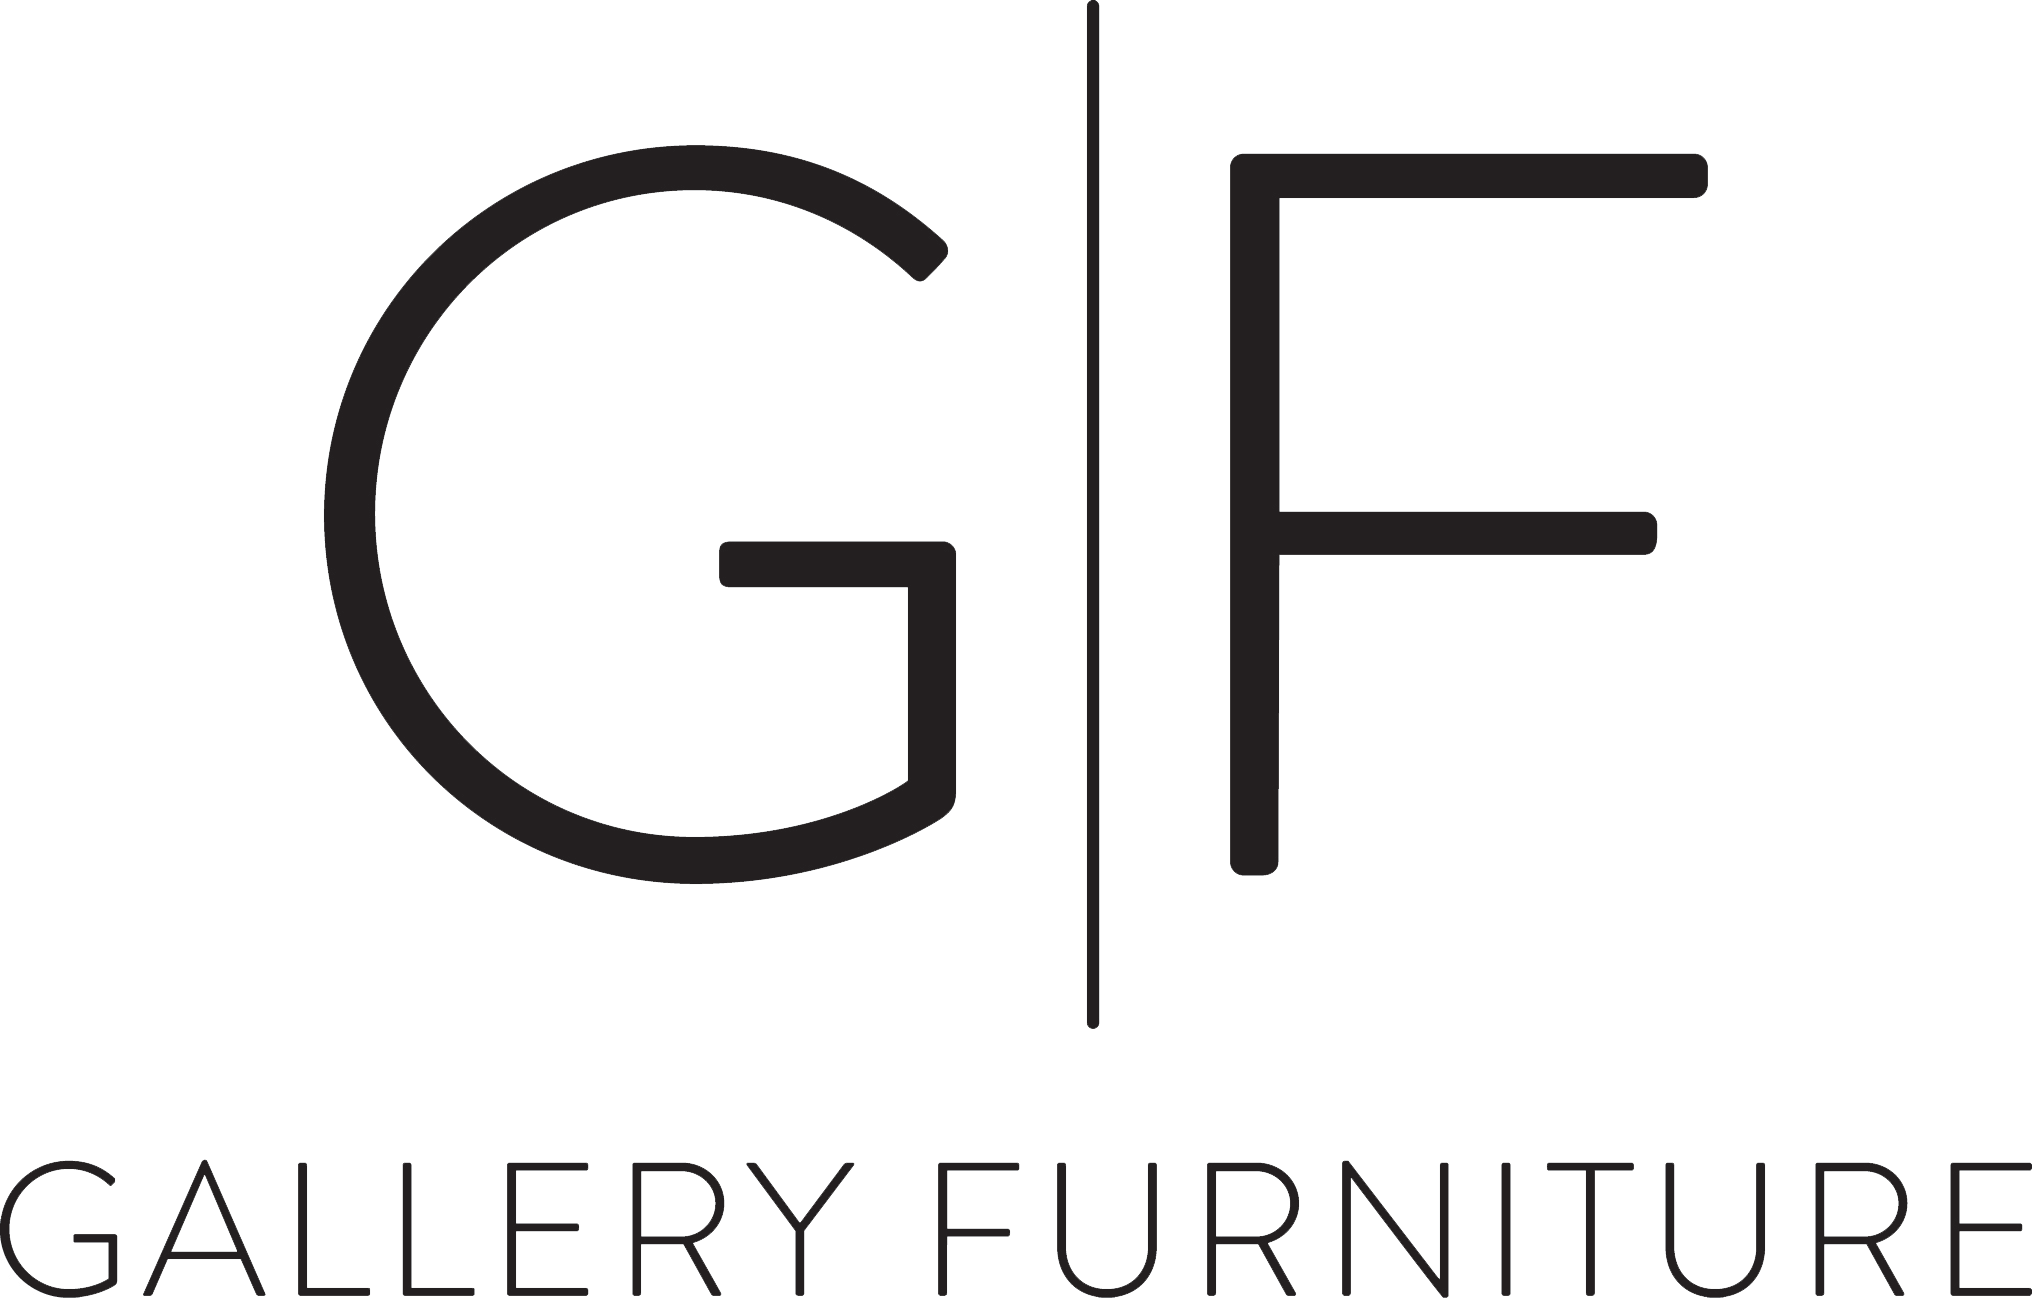 Gallery Furniture Ksev Radio